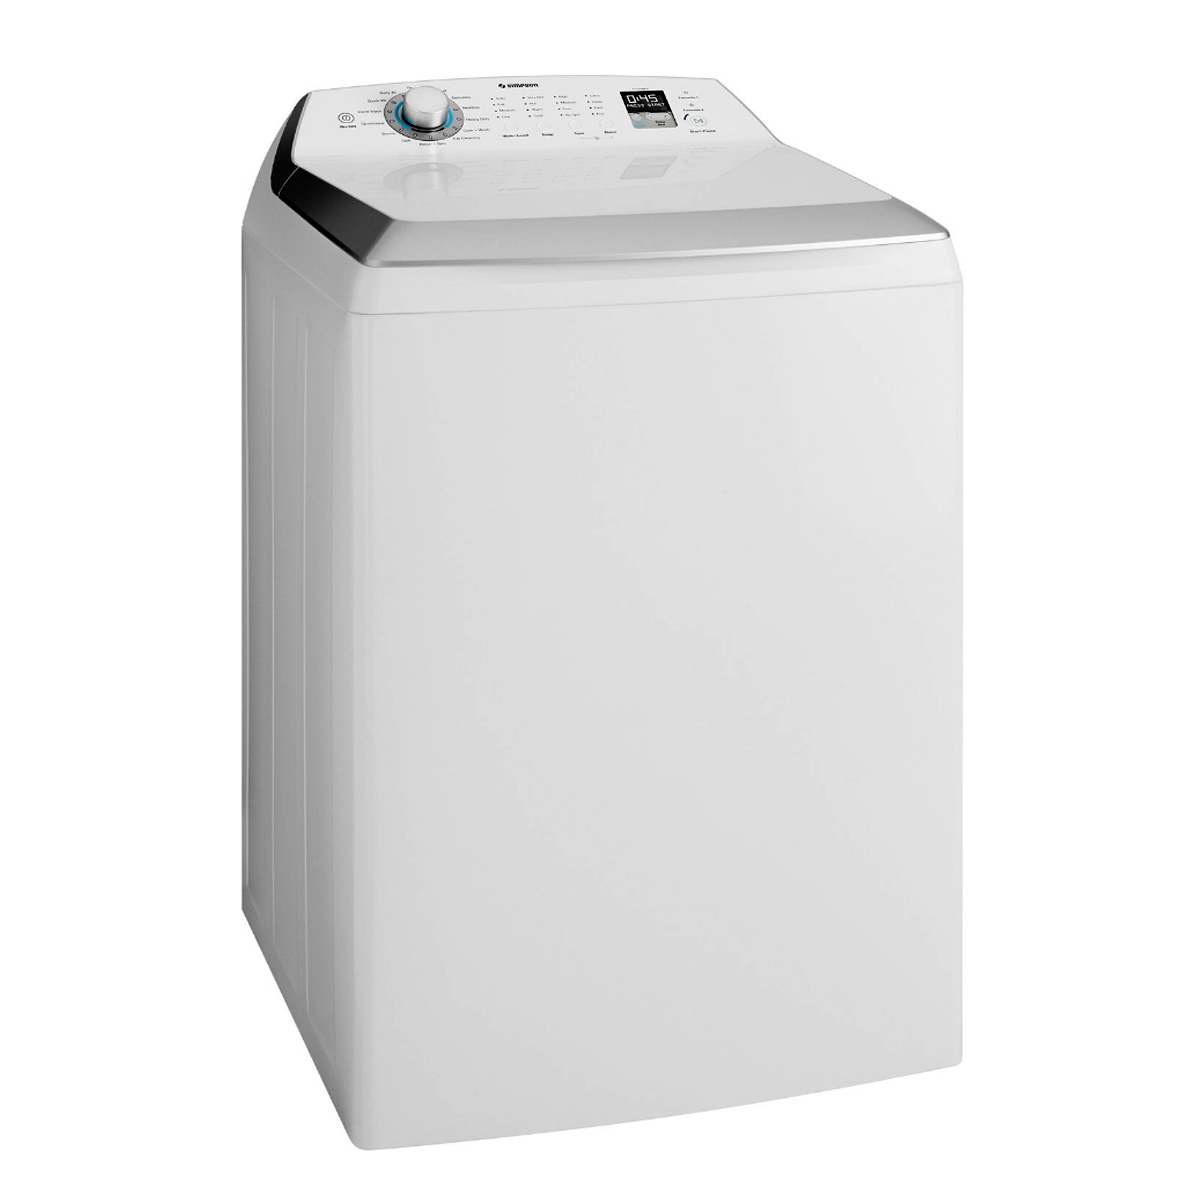 Simpson SWT1023A 10kg Top Load Washer 42930